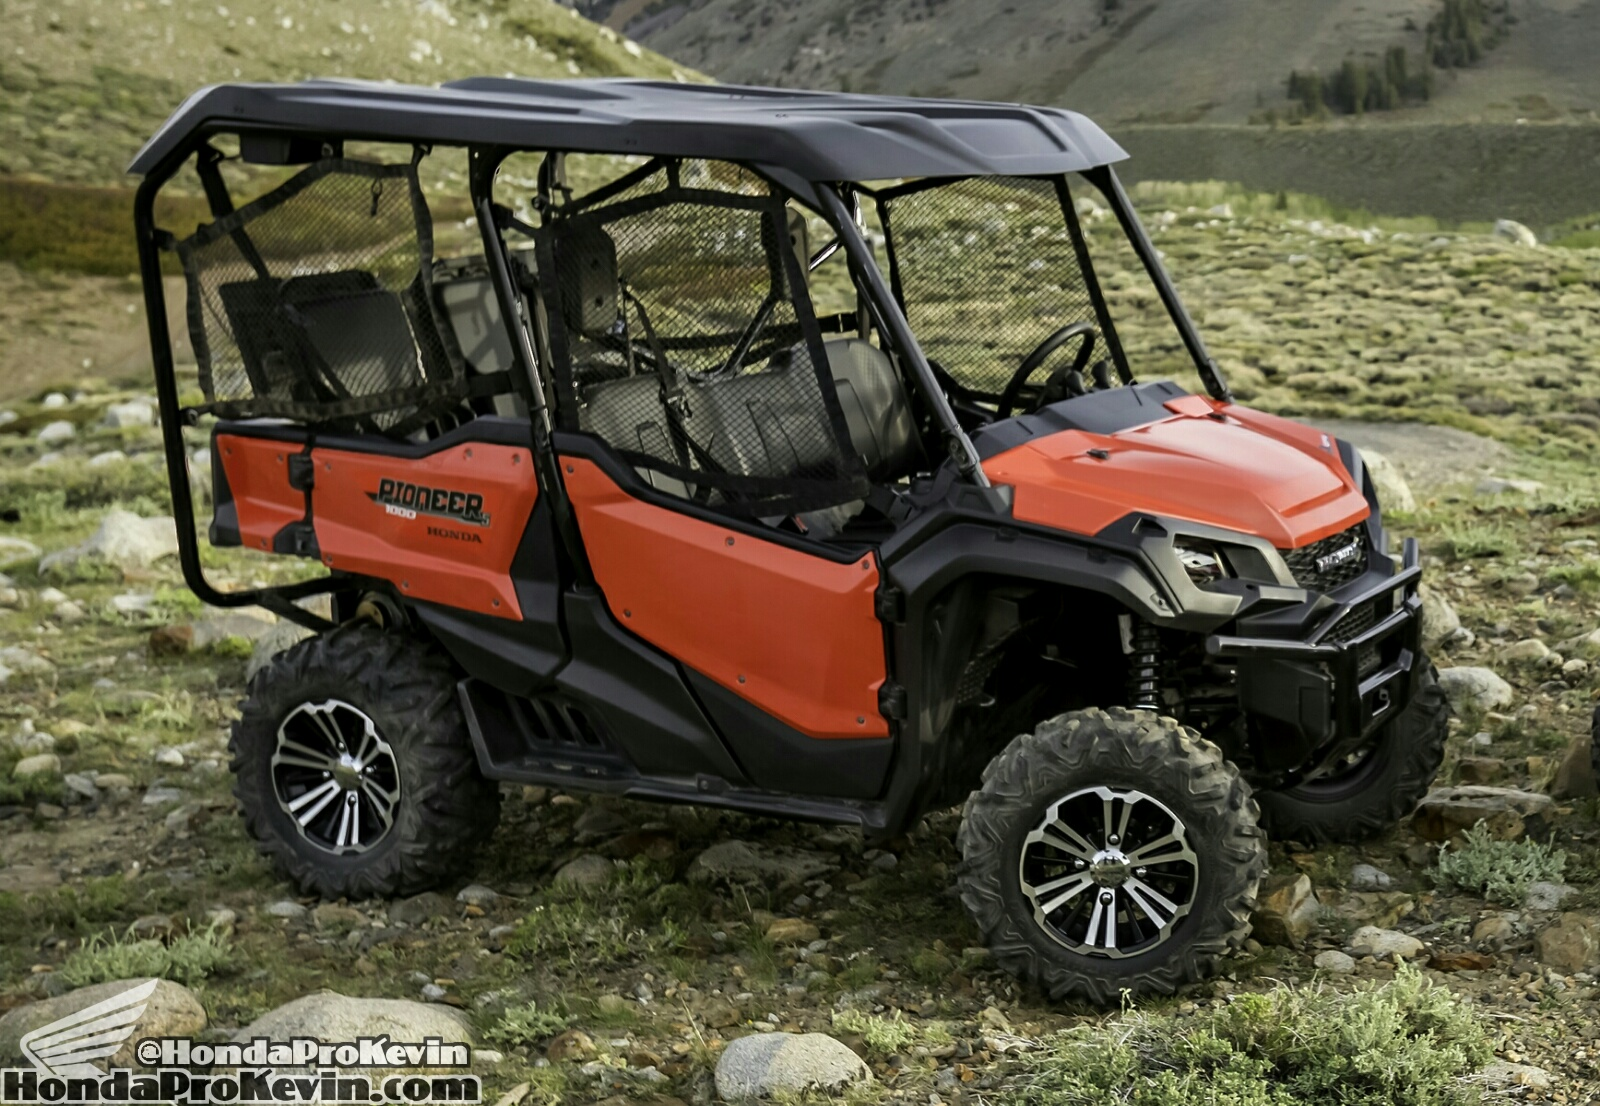 2016 honda pioneer 1000 5 review specs pictures. Black Bedroom Furniture Sets. Home Design Ideas